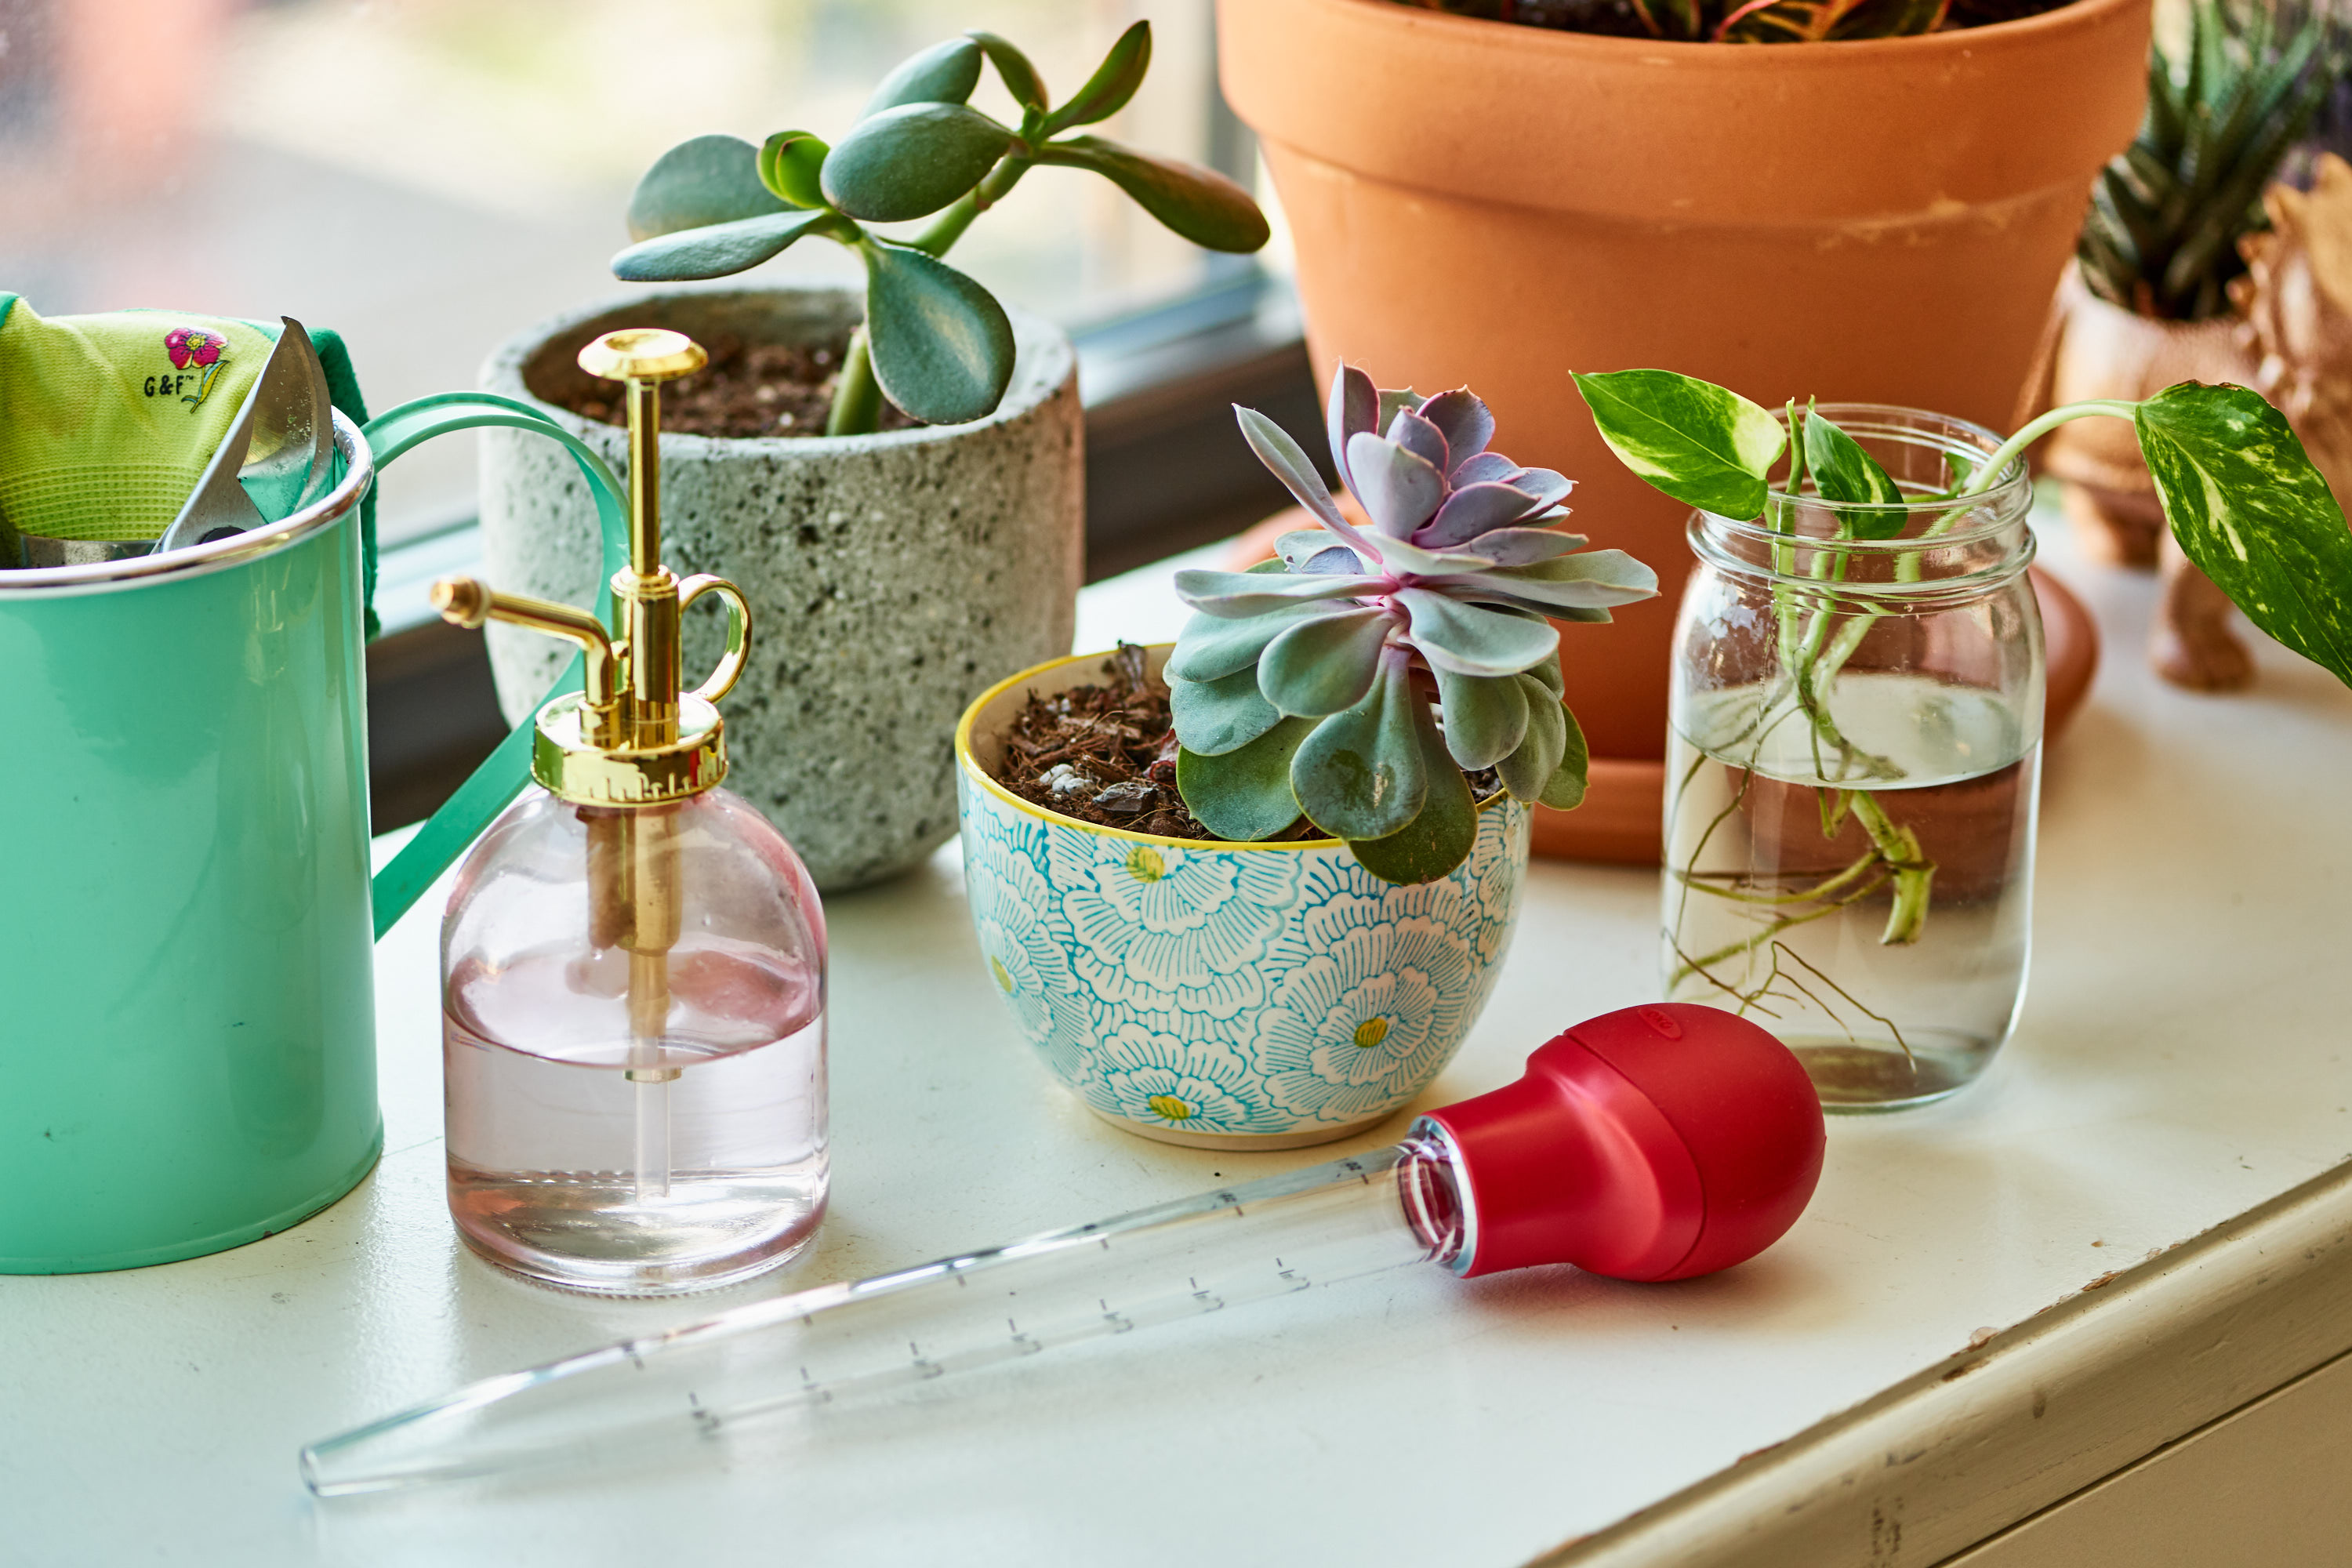 How To Fix Overwatered Plants With A Turkey Baster Apartment Therapy